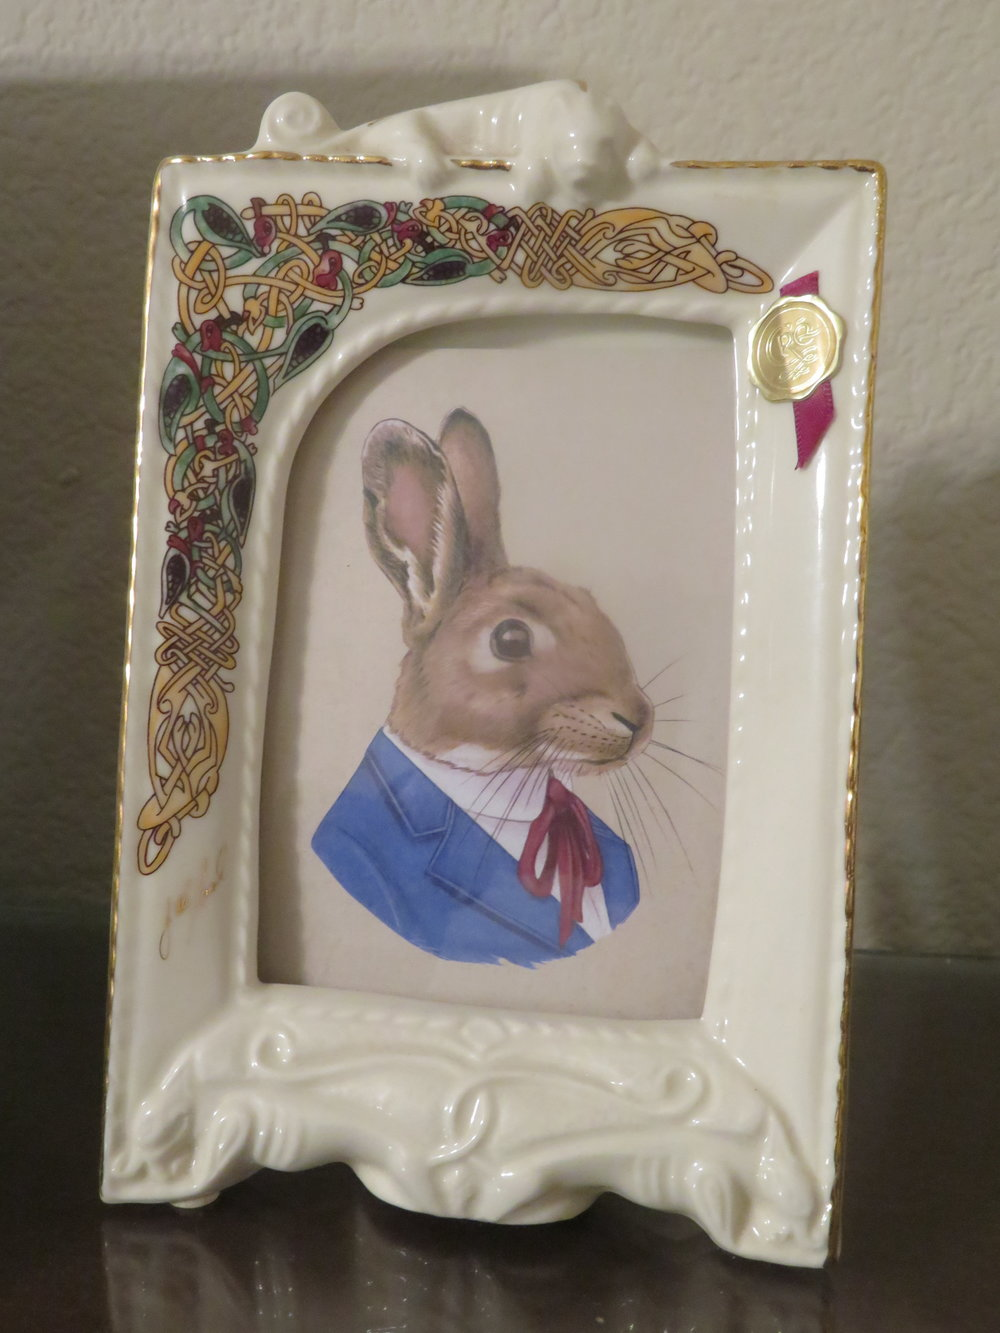 Uncle Rabbit happily dwells in the CRE picture frame until I can find another photo to take his place.